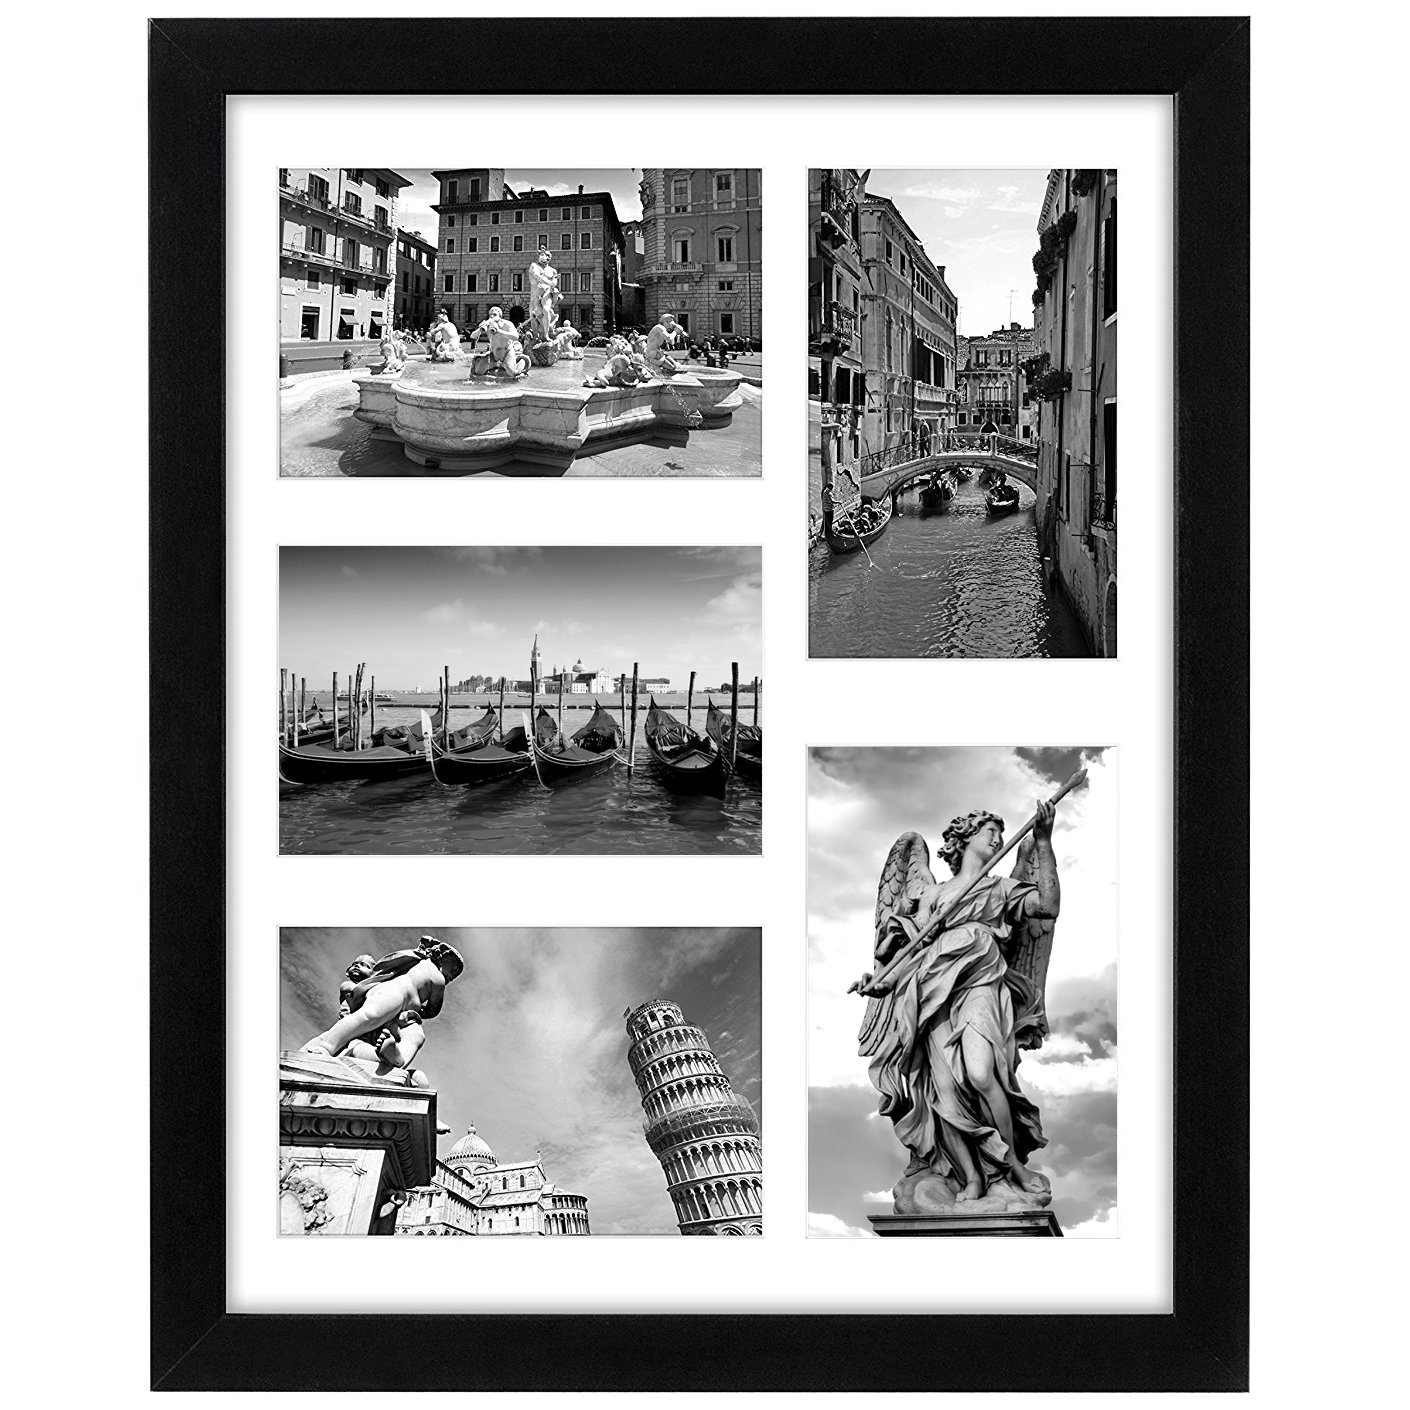 Americanflat 11x14 Collage Picture Frame - Display Five 4x6 Pictures with Mat MW1114BK546